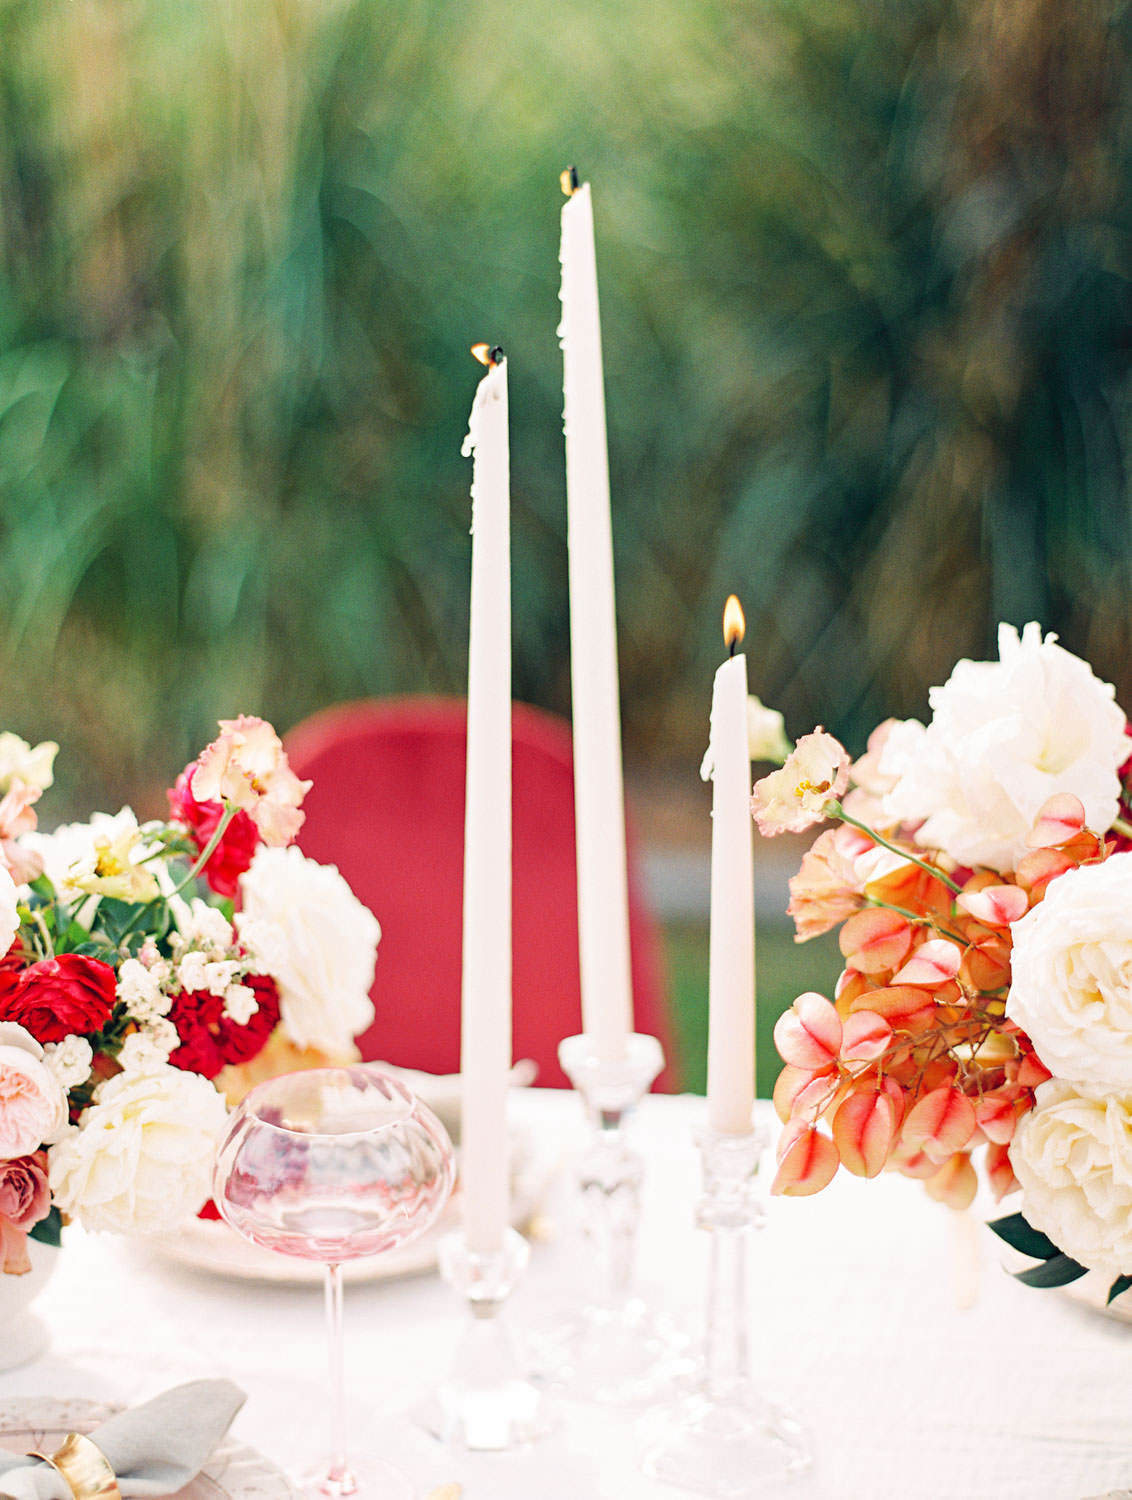 Taper candles on White linen with burgundy velvet chairs and centerpieces with ivory blush red and neutral tones, Pampas Grass Wedding in San Diego on Film by Cavin Elizabeth Photography